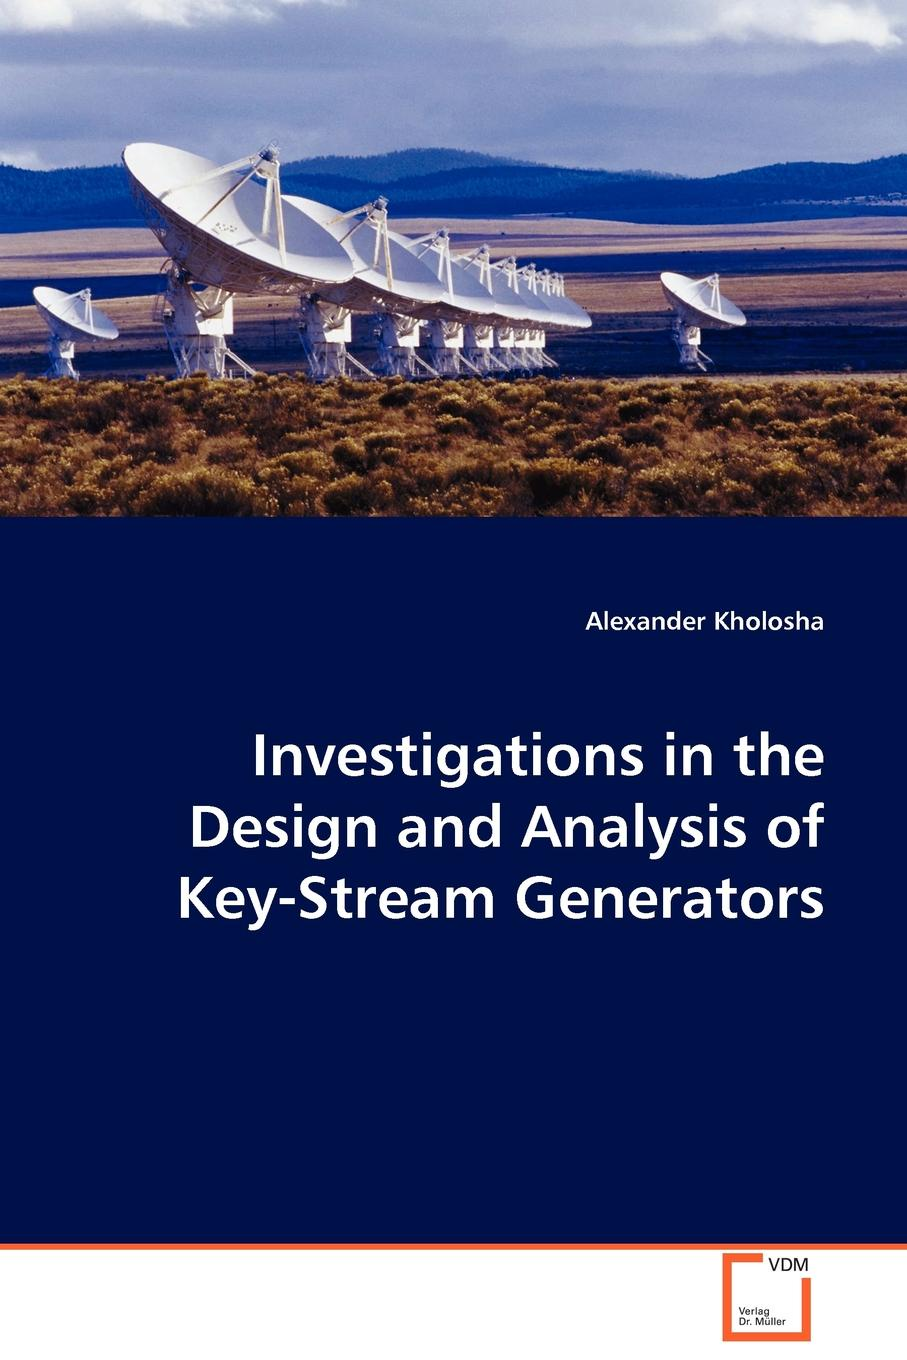 Alexander Kholosha Investigations in the Design and Analysis of Key-Stream Generators alan johnson recommendations for design and analysis of earth structures using geosynthetic reinforcements ebgeo